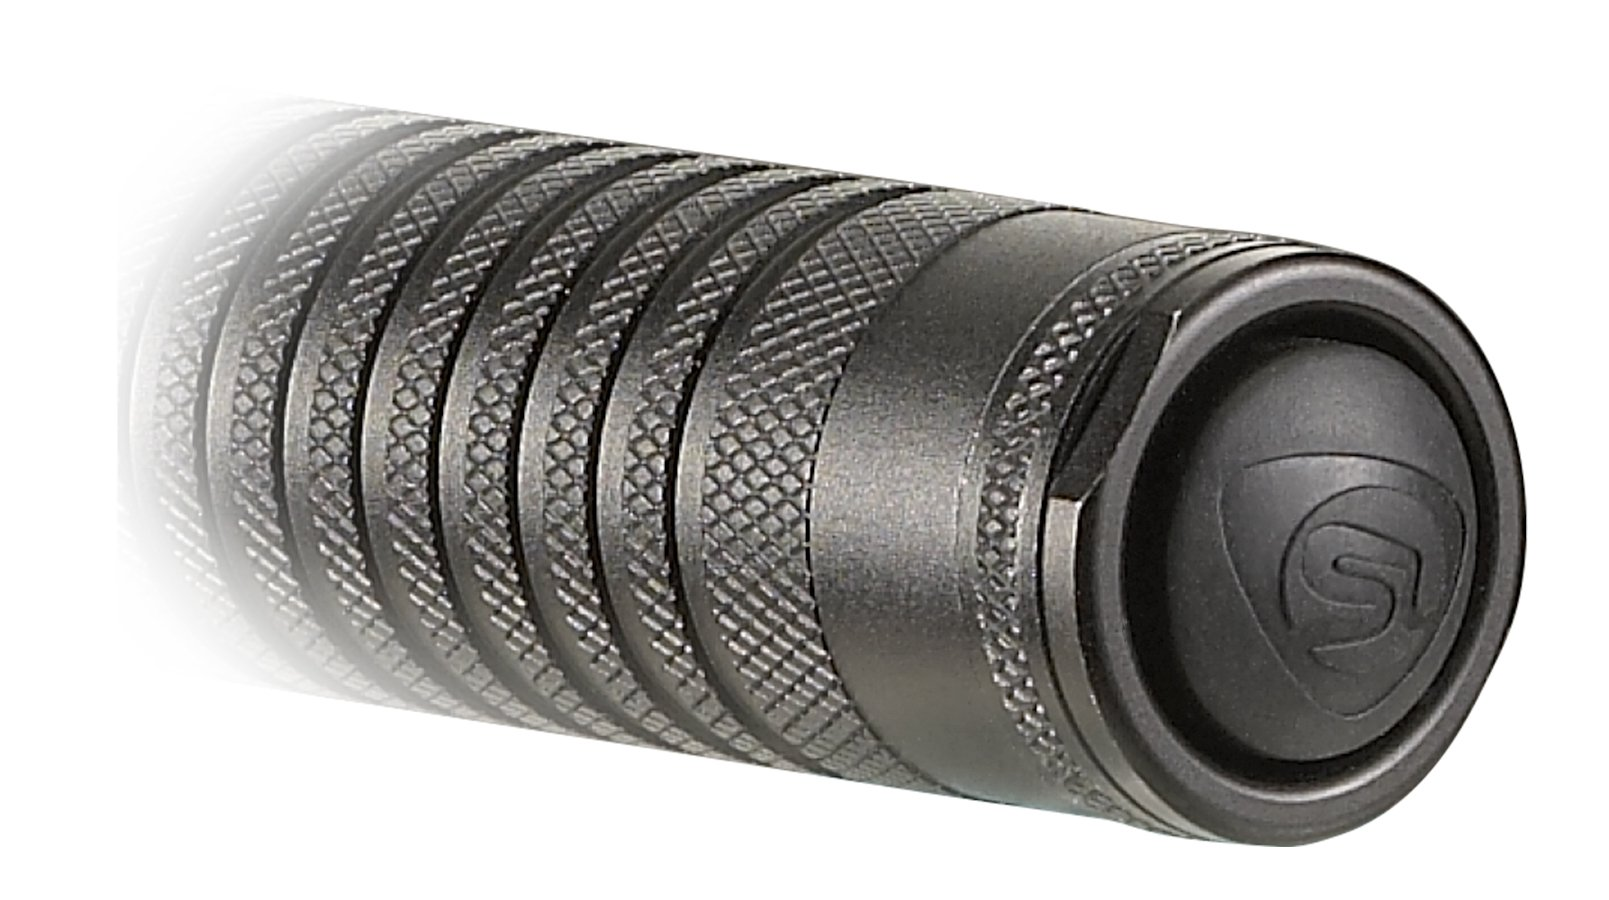 Streamlight 74610 Strion Ds HL Rechargeable Professional Flashlight Without Charger, Black by Streamlight (Image #3)